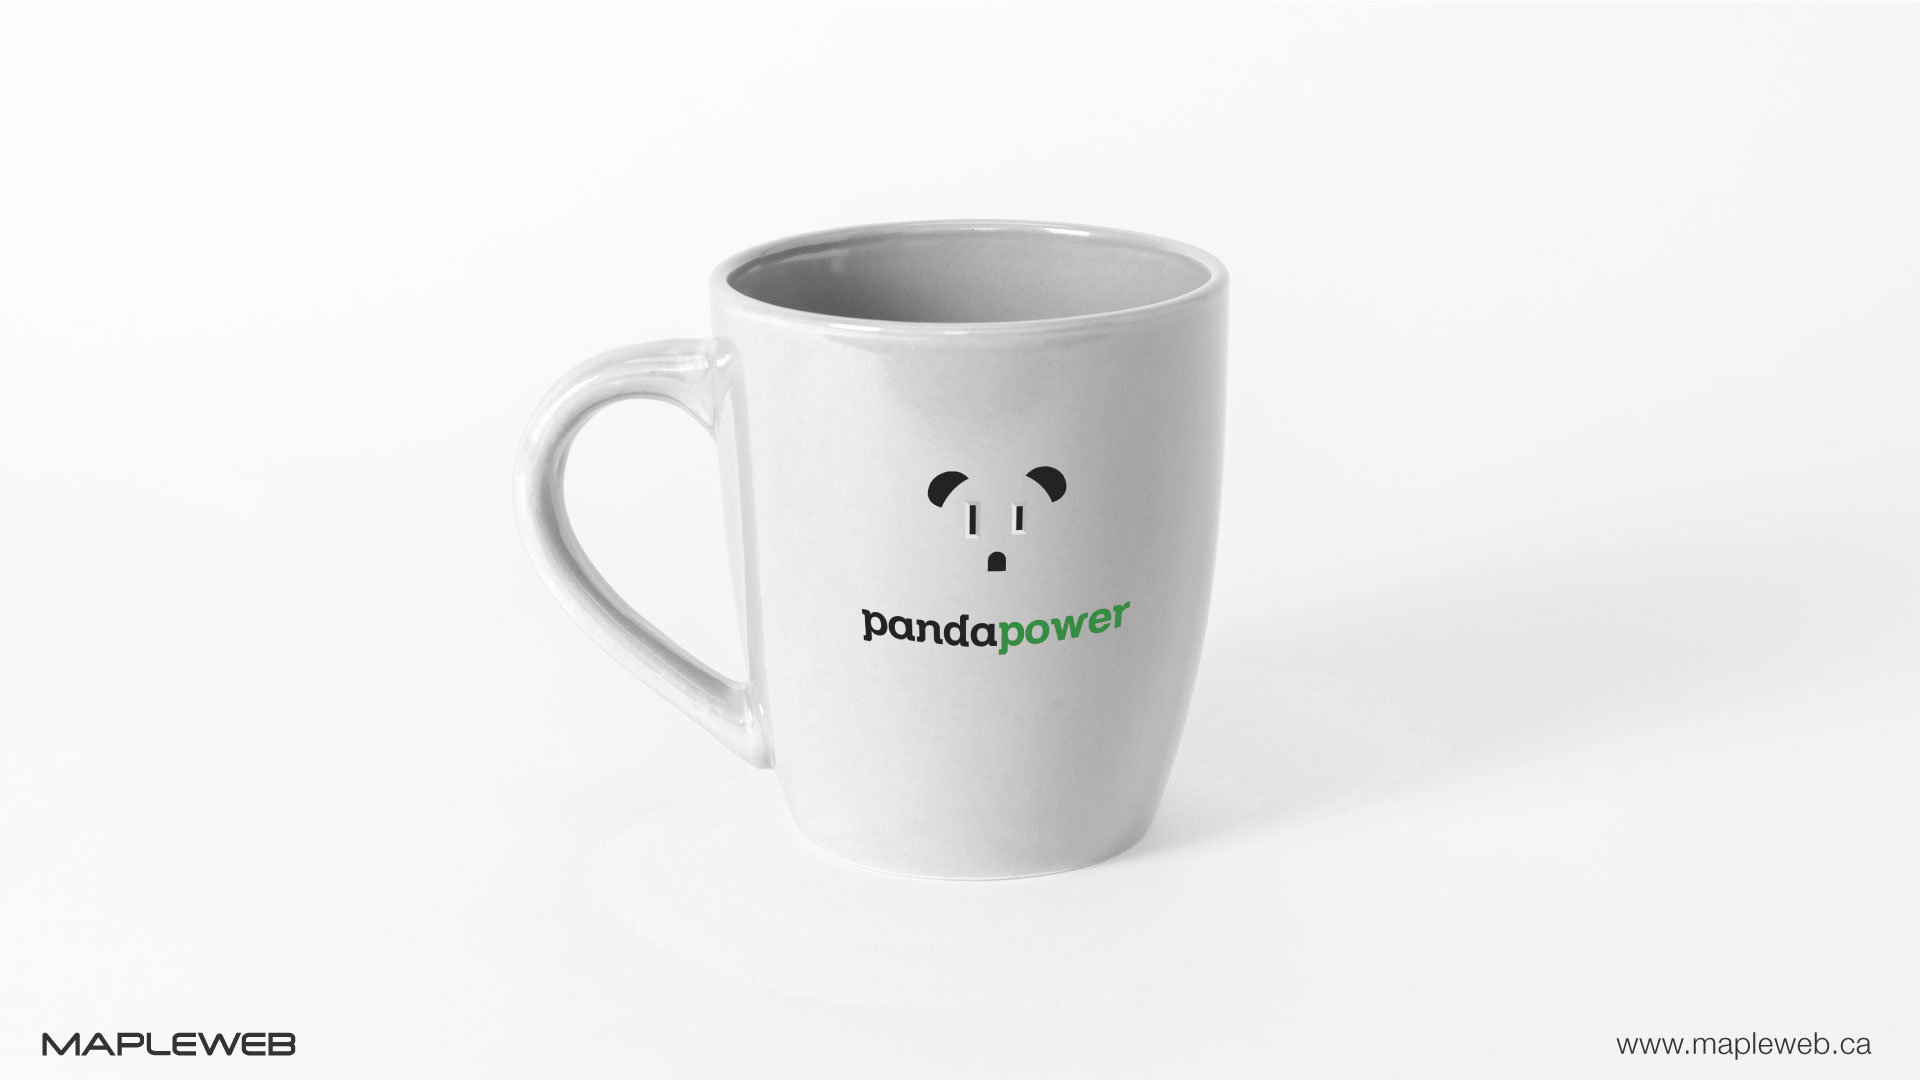 panda-power-design-by-mapleweb-vancouver-canada-roll-over-image